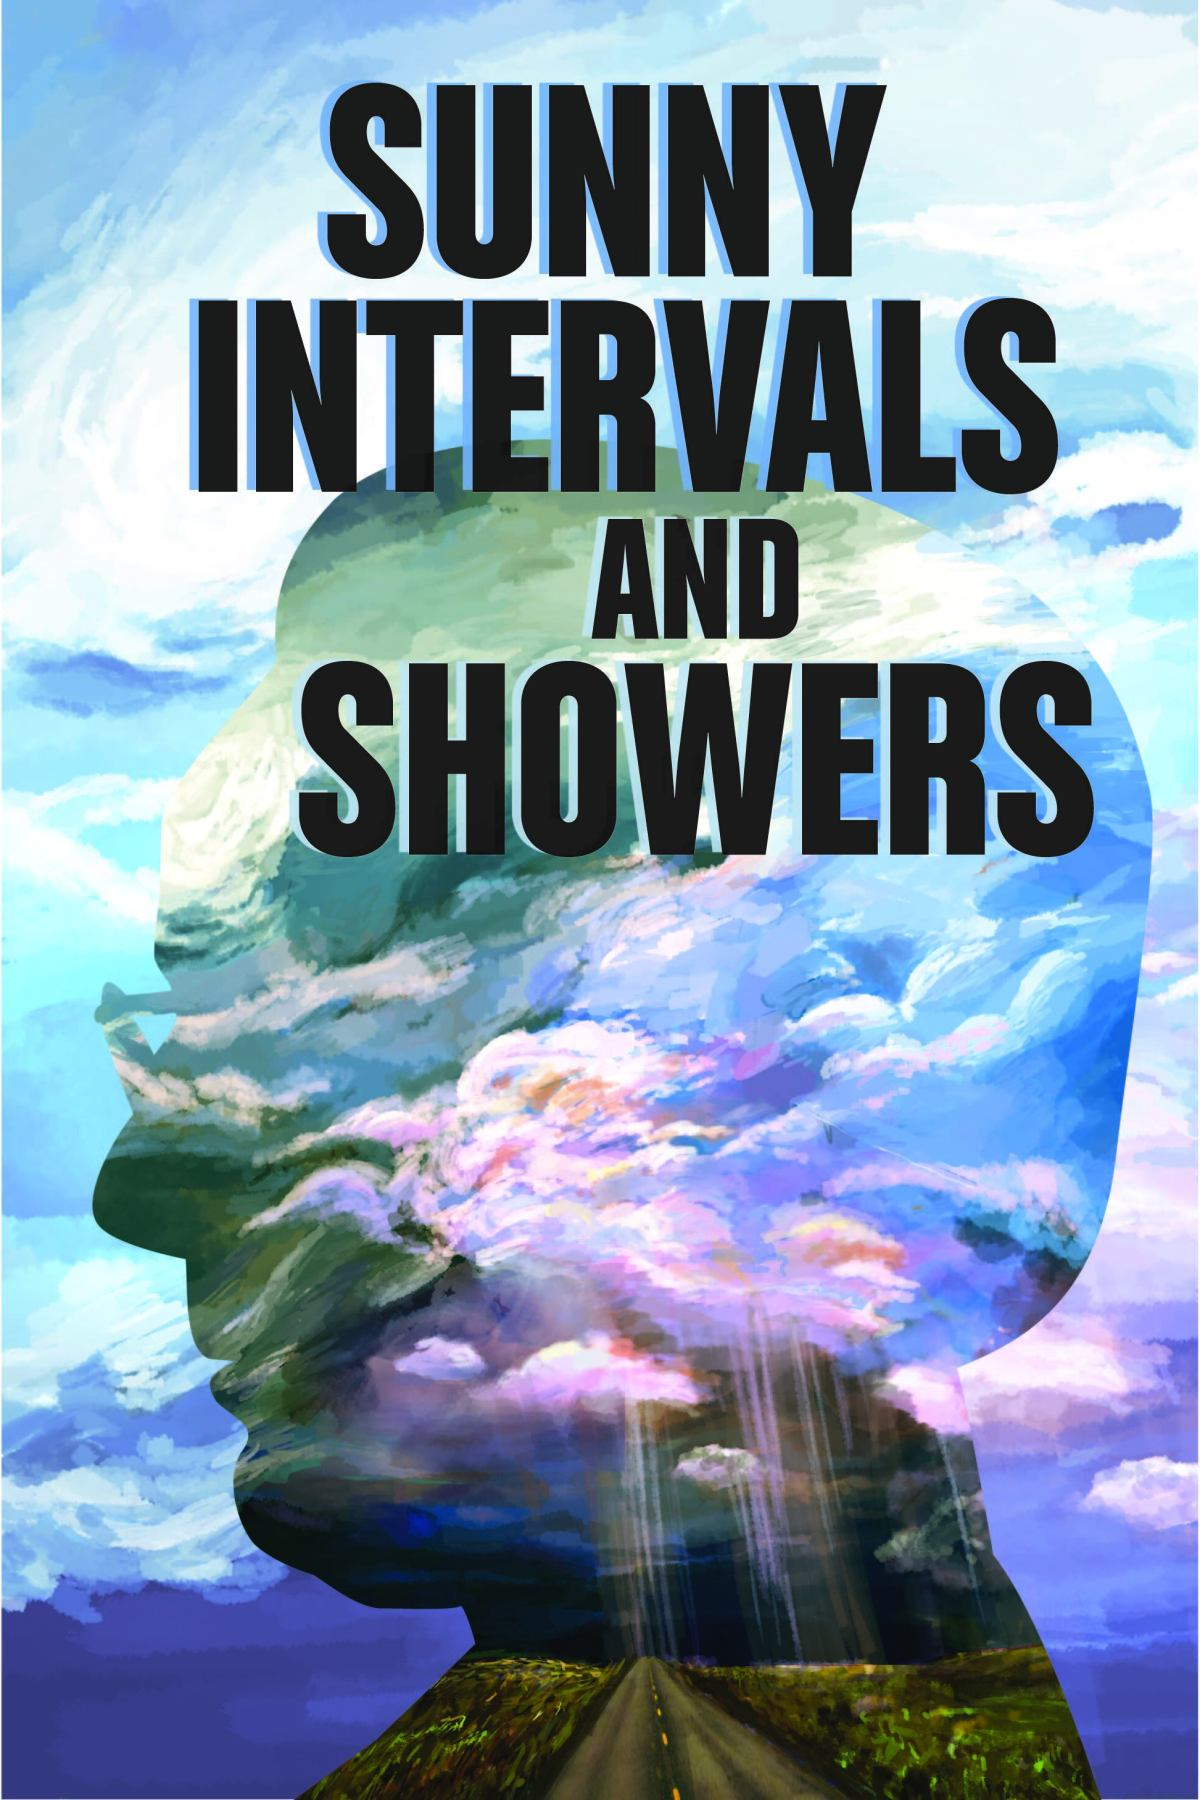 Greater New York Fulbright Film Series: Outdoor Screening of Sunny Intervals and Showers